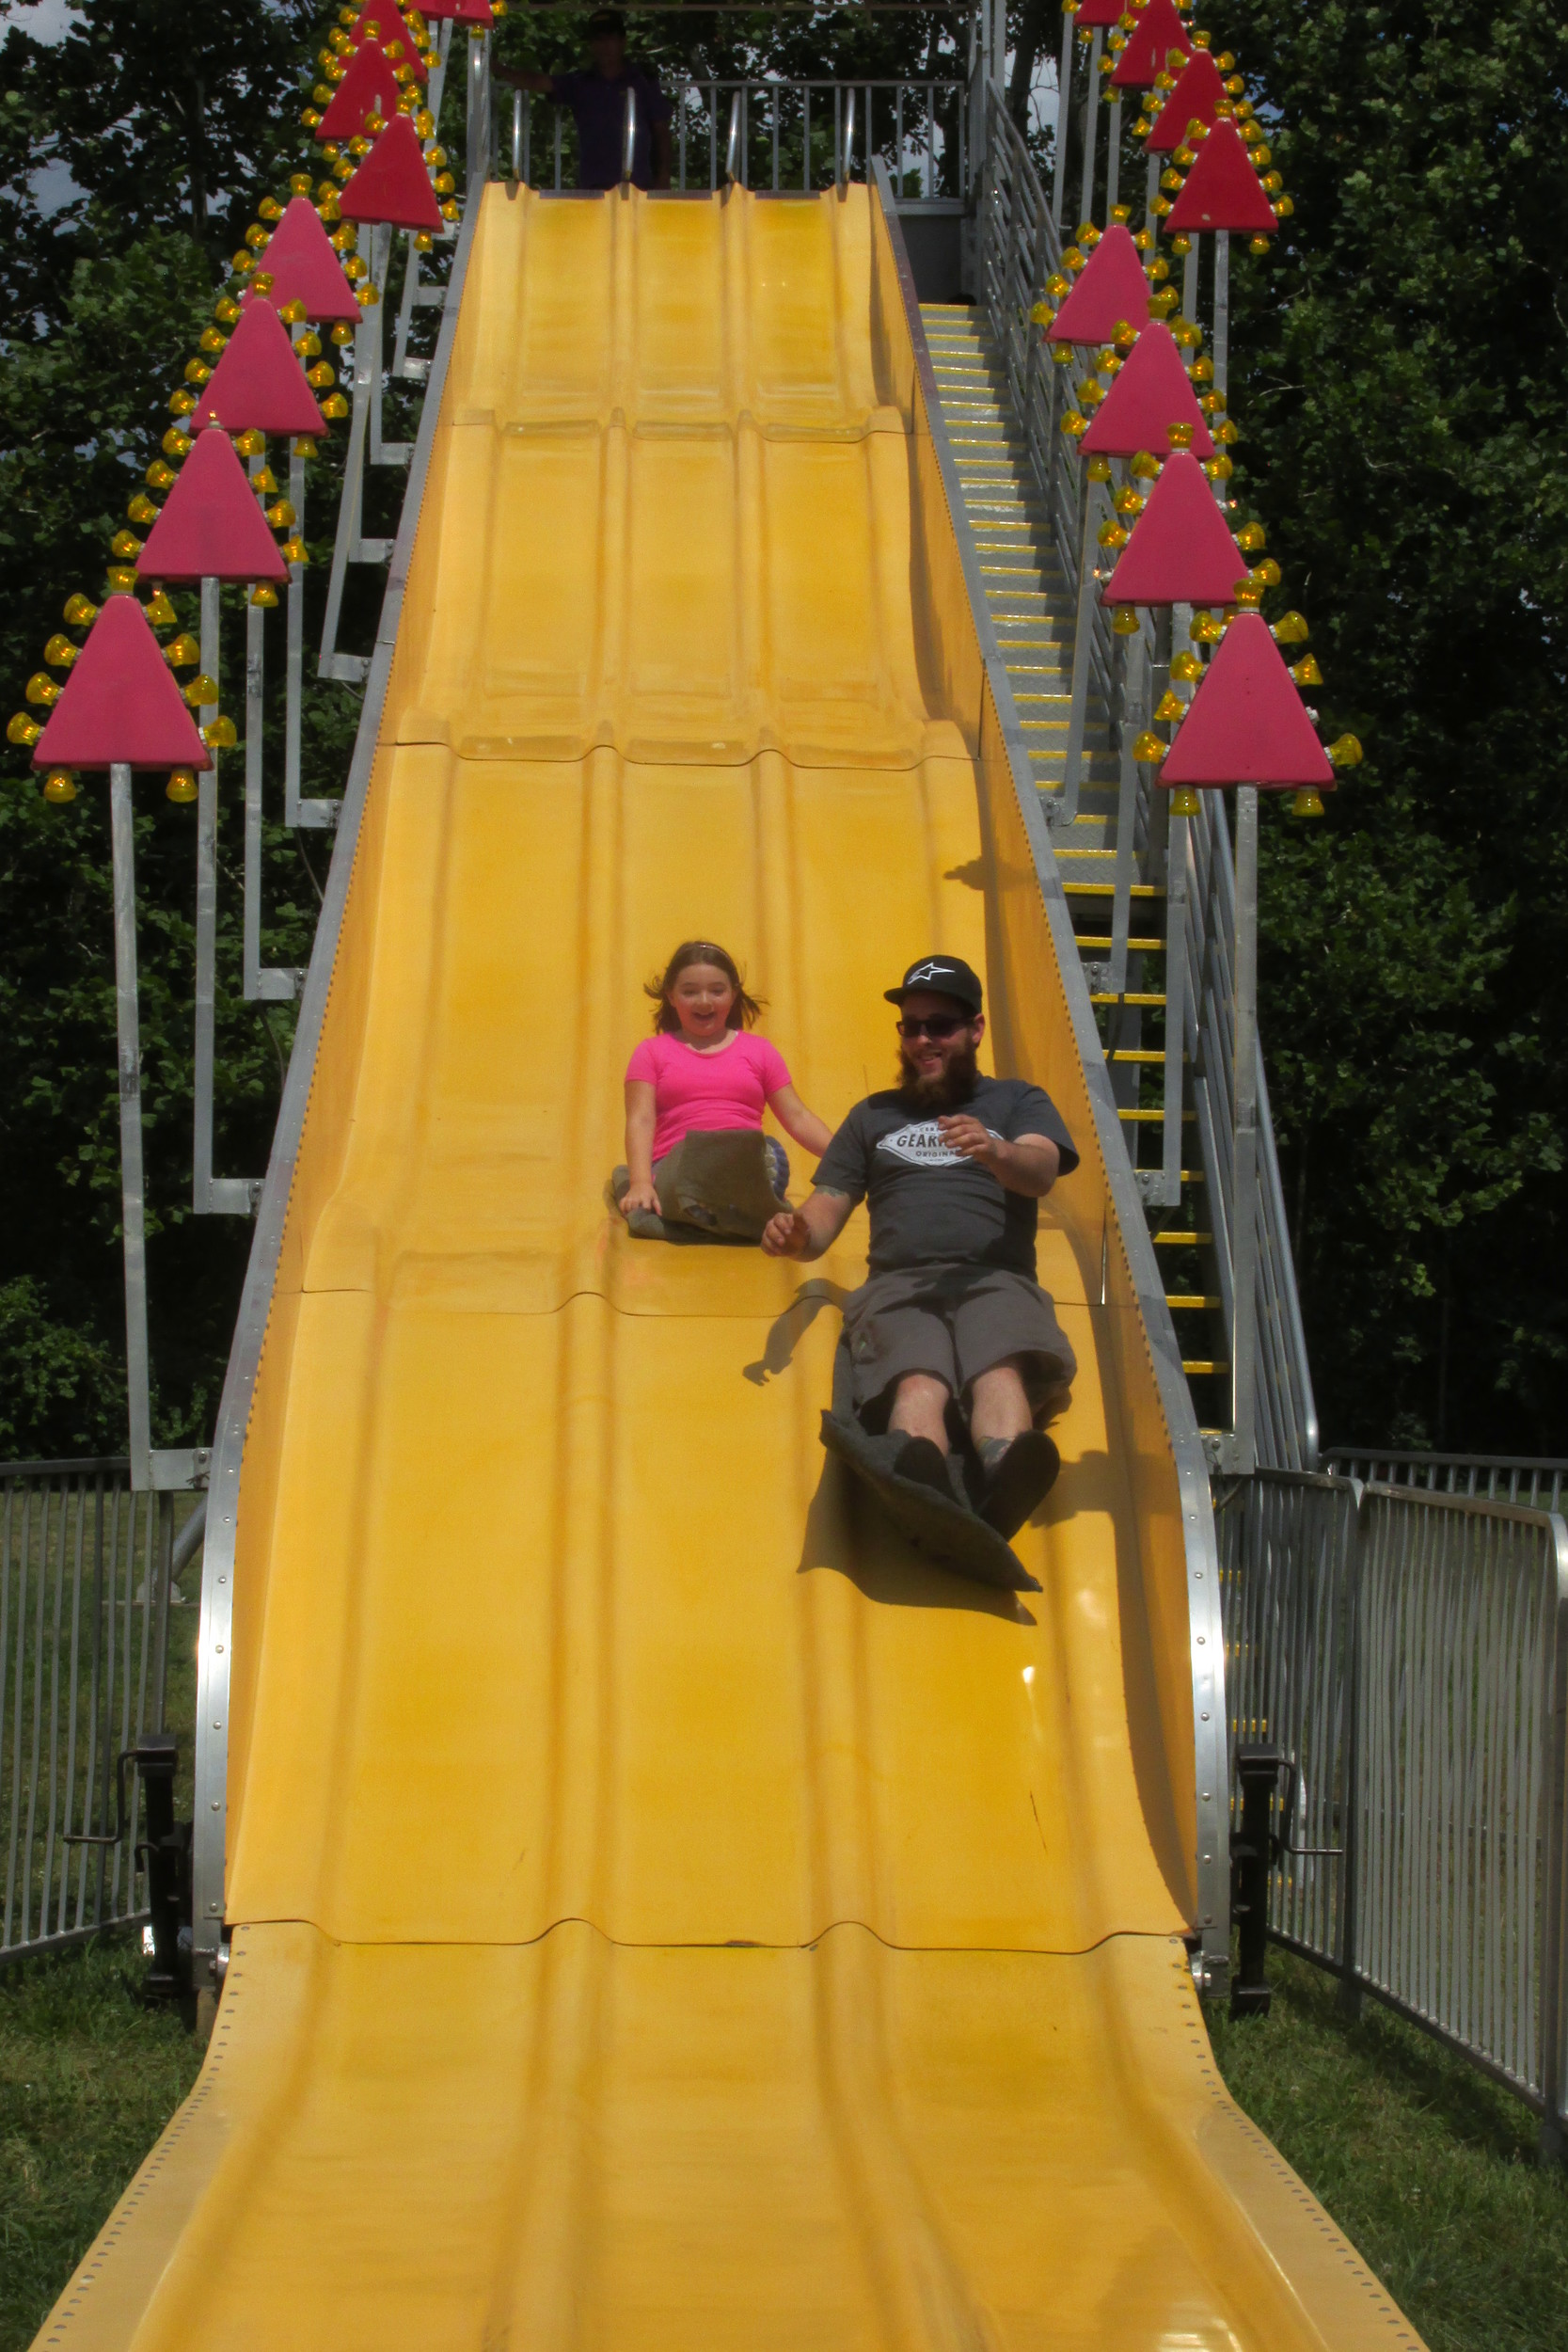 SUPER SLIDE: Randy Leary and his daughter Sylvia, 9, enjoy the thrills while zooming down the Fun Slide during Sunday's Rockwell Amusements Carnival at Saint Rocco Church in Johnston.